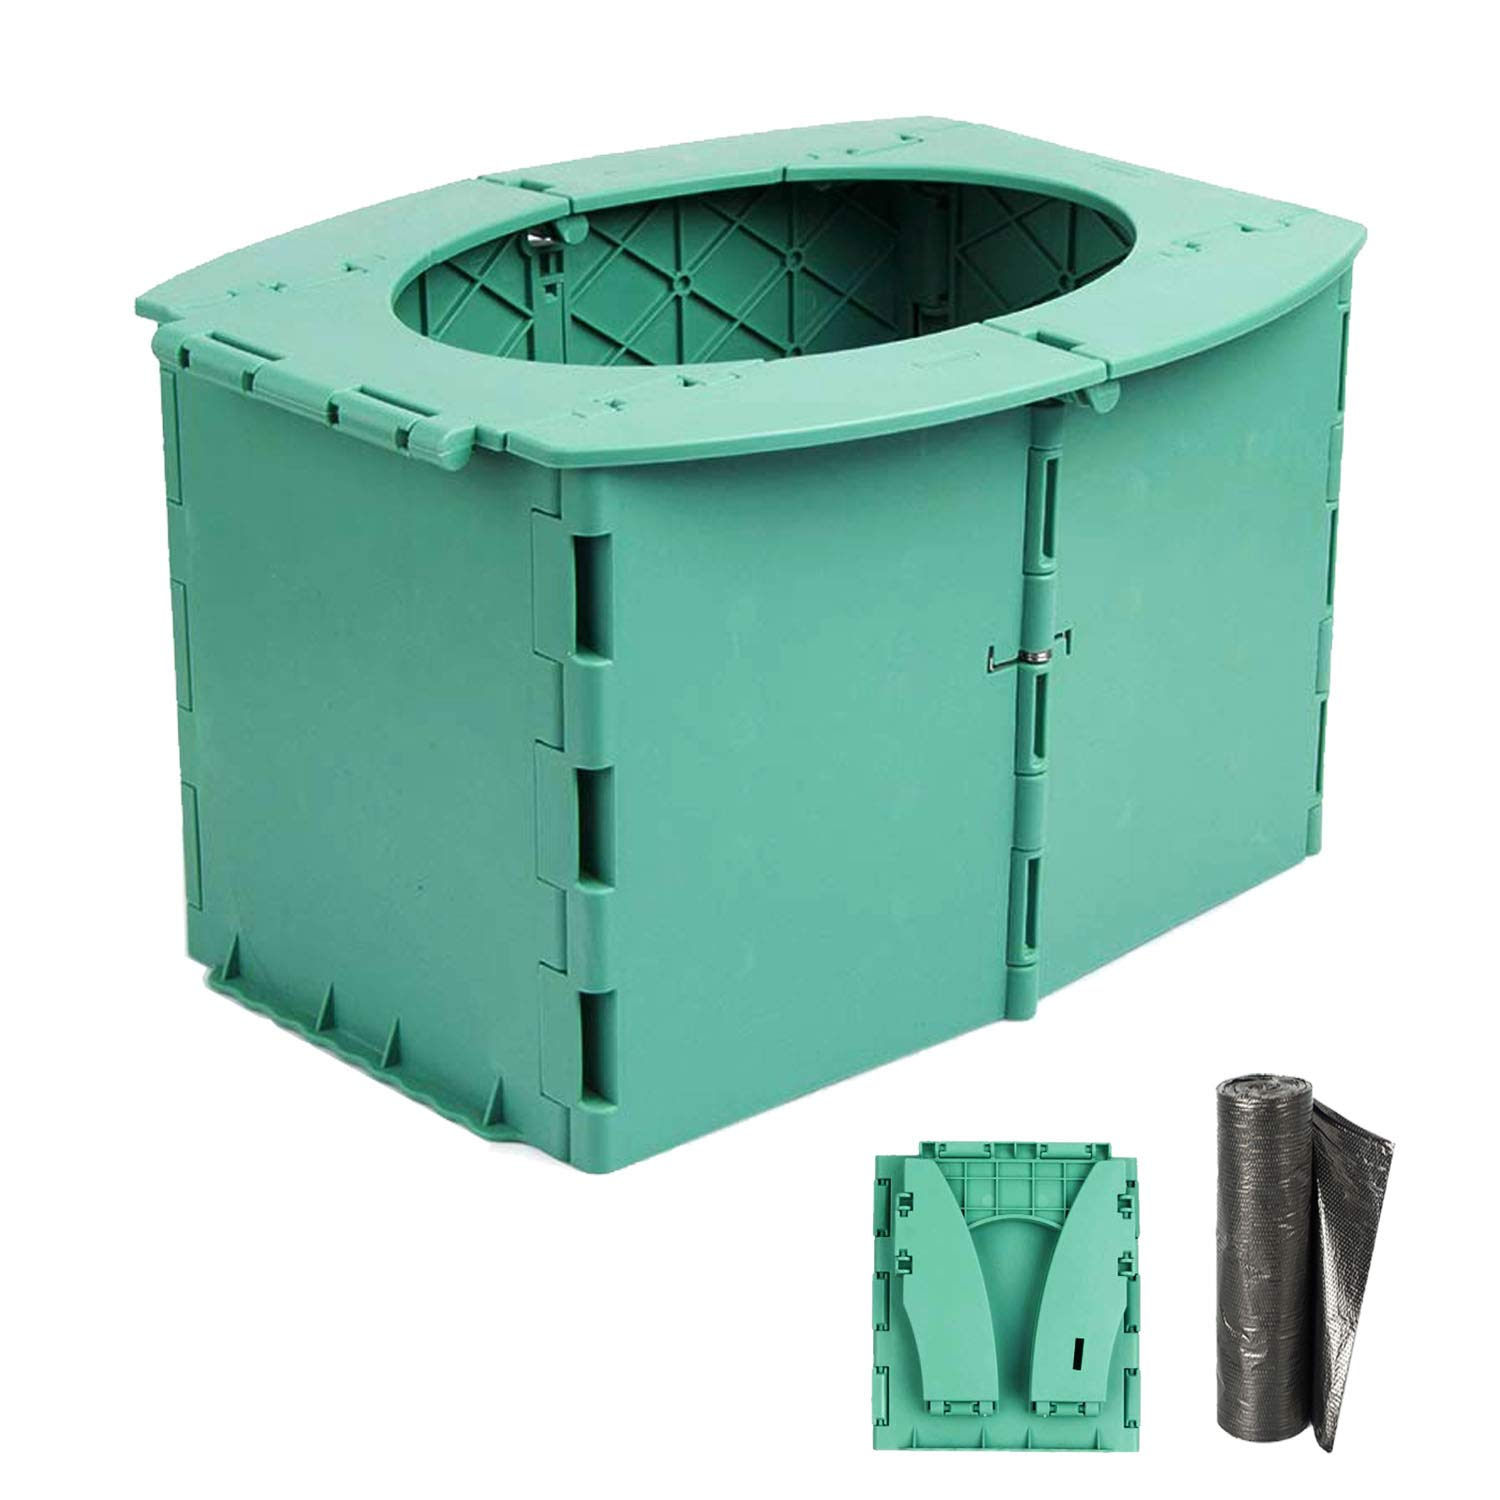 ymmsuuie Travel Potty for Kids, Reusable Portable Folding Potty for Toddler, Travel Foldable Toilet Seat for Car Travel Outdoor Camping, Toddler Potty Seat for Baby Potty Training (Green)